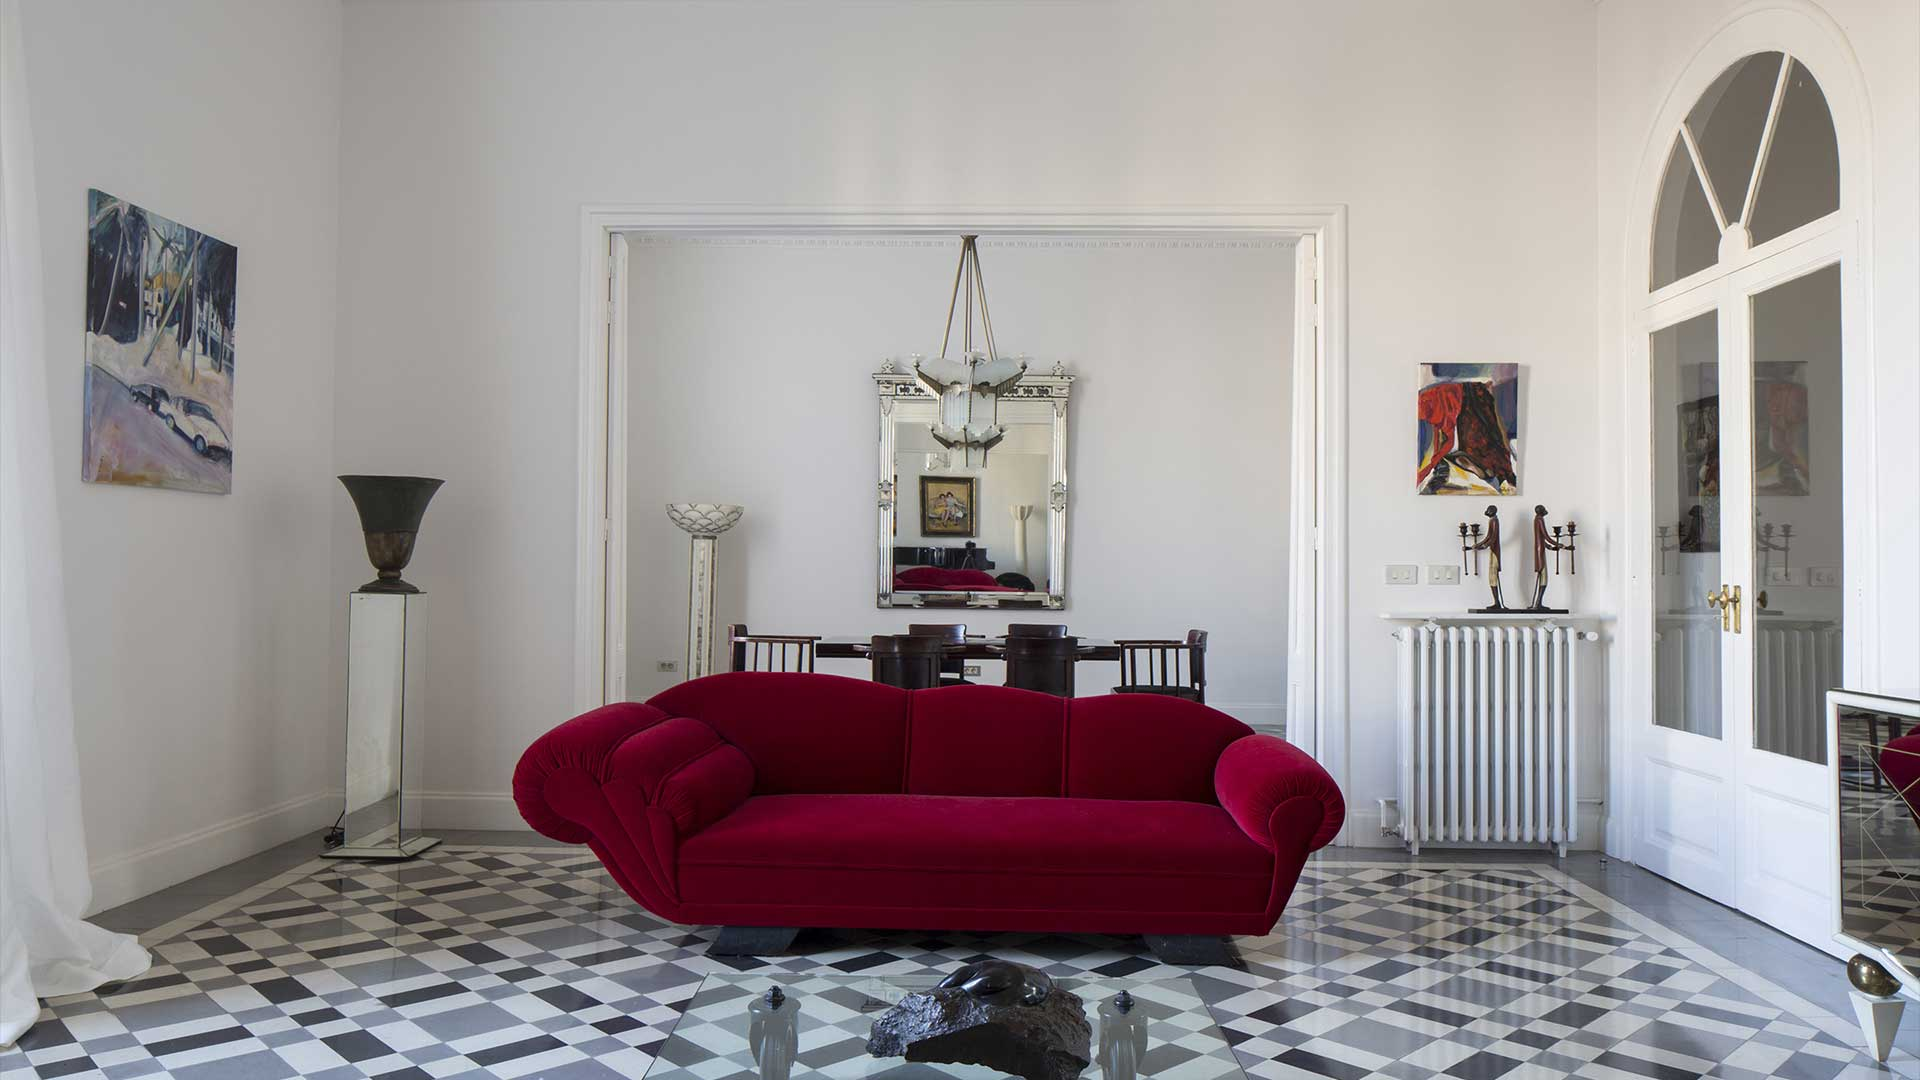 Architecture and Interior Design in Barcelona. Luxury apartment by SOGDesign